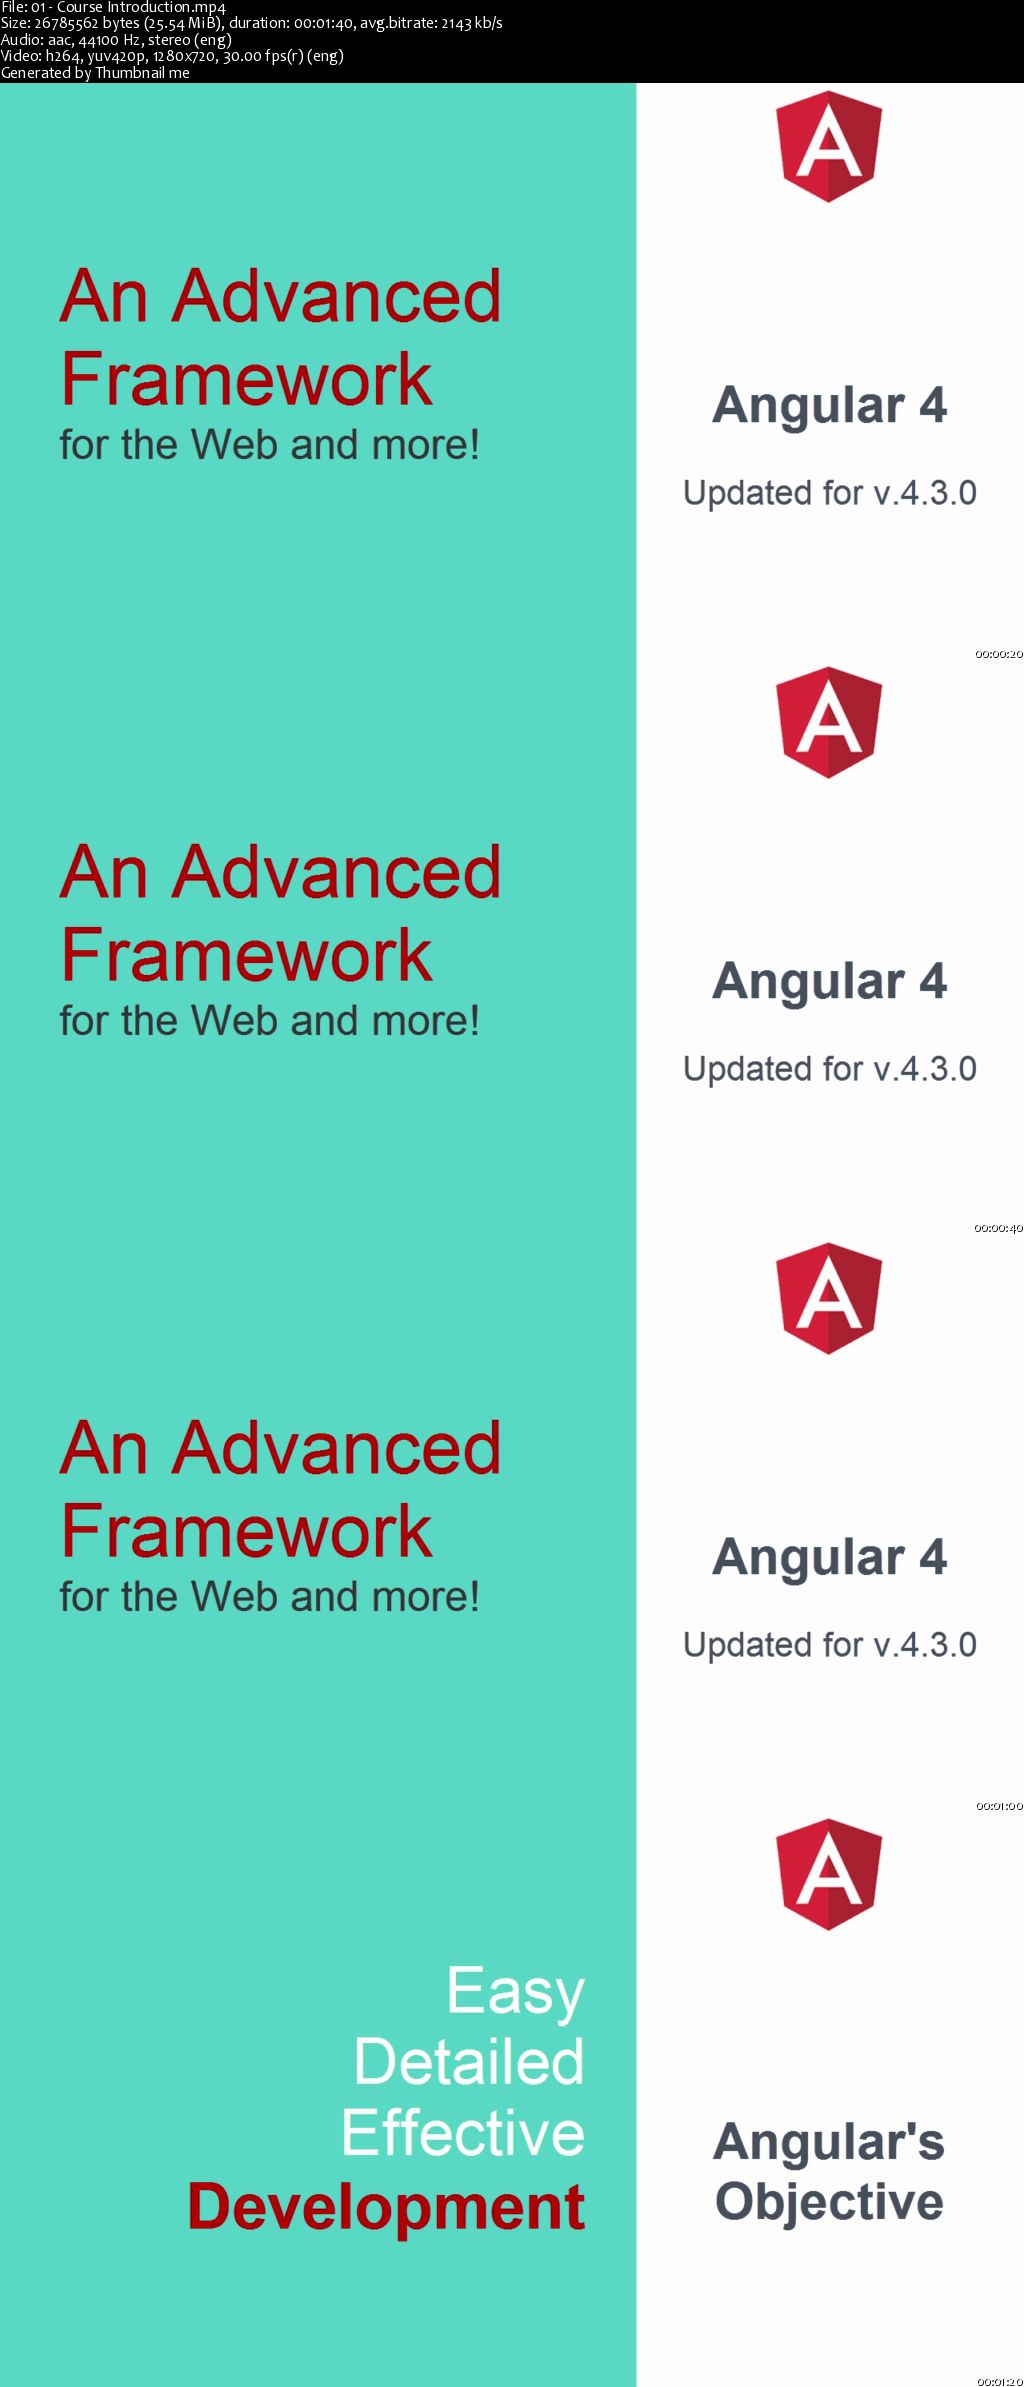 Starting with Angular 4 (updated for Version 4.3)